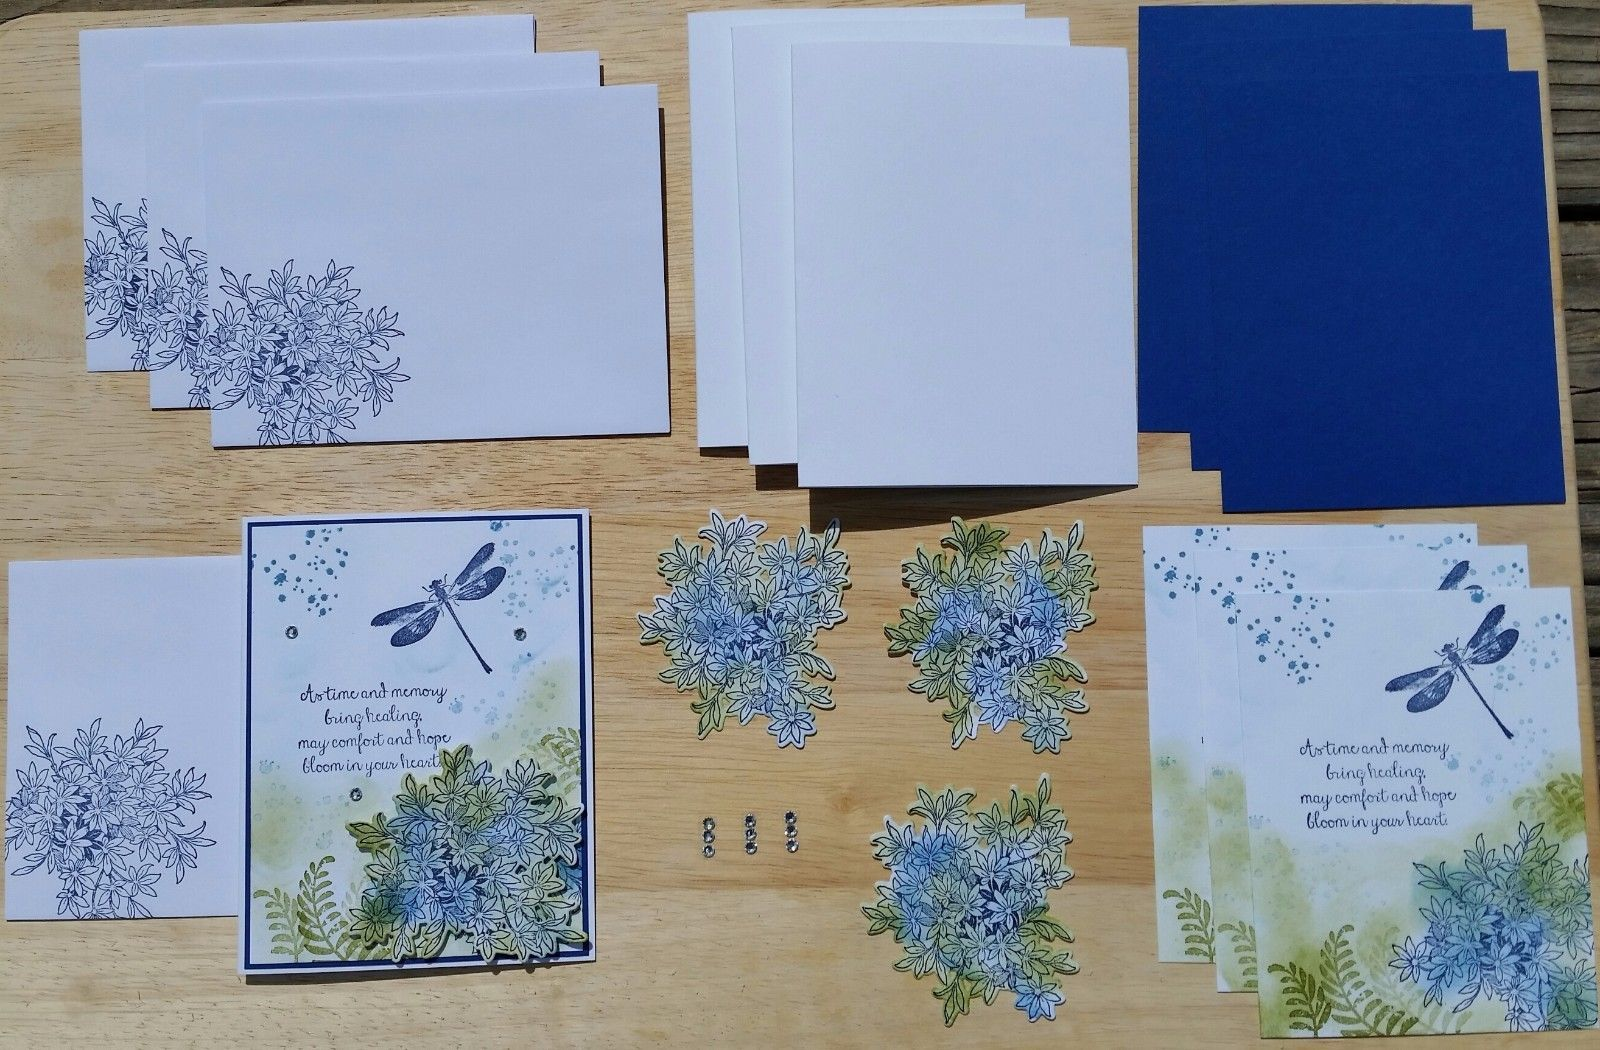 """HANDMADE STAMPIN' UP! """"AWESOMELY ARTISTIC"""" SYMPATHY CARD KIT SET OF 4. EACH CARD IS IN IT OWN A2 CLEAR CELLOPHANE SLEEVE ENVELOPE. YOU WILL RECEIVE 1 COMPLETED CARD AND ALL THE SUPPLIES YOU WILL NEED TO MAKE 3 MORE CARDS WITH 4 MATCHING ENVELOPES. 